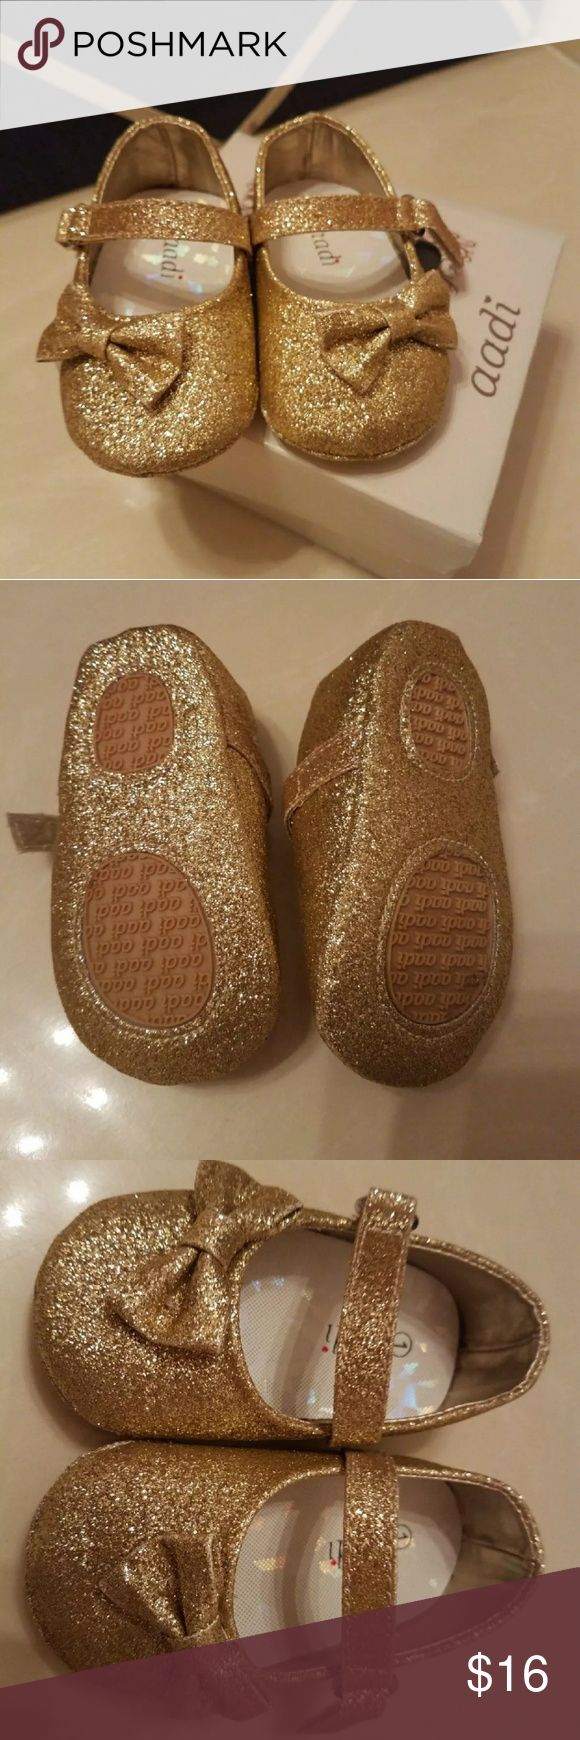 Babygirl Aadi Gold Glitter Dress Shoes Brand new! Very beautiful shoes can fit up to 3 Months. Perfect for the holidays or special occasions! Great for a gift. Check out my closet ❣ Shoes Dress Shoes